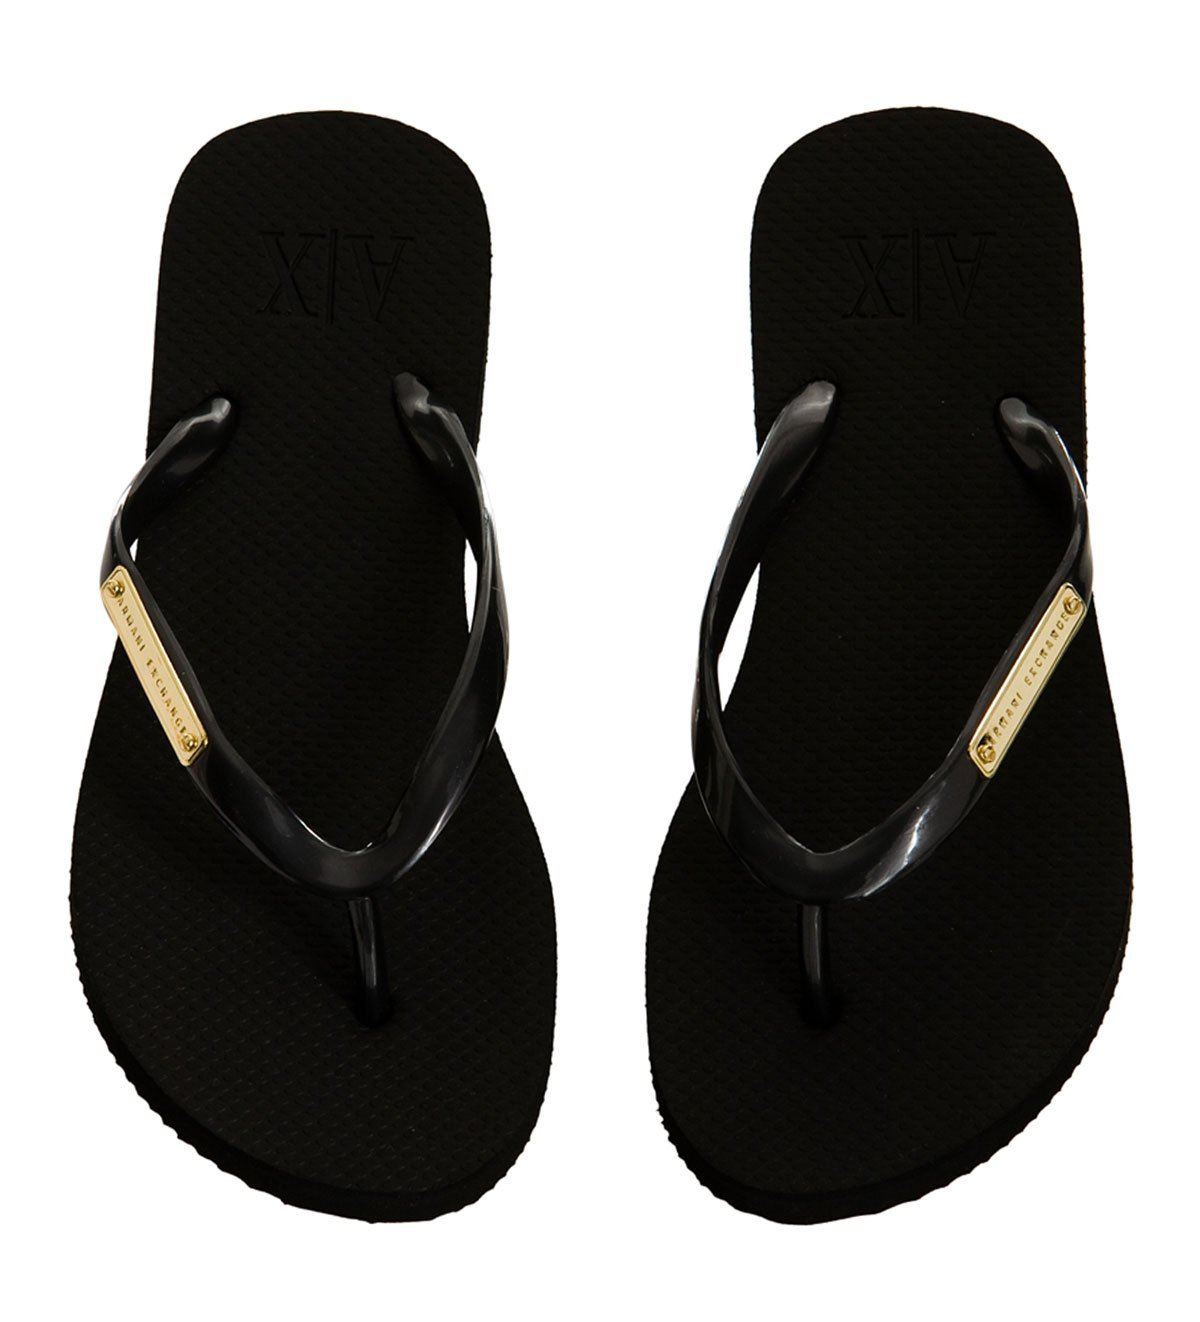 06d2c7e80 Armani Exchange Flip Flops Women. Armani Exchange Logo Plate ...